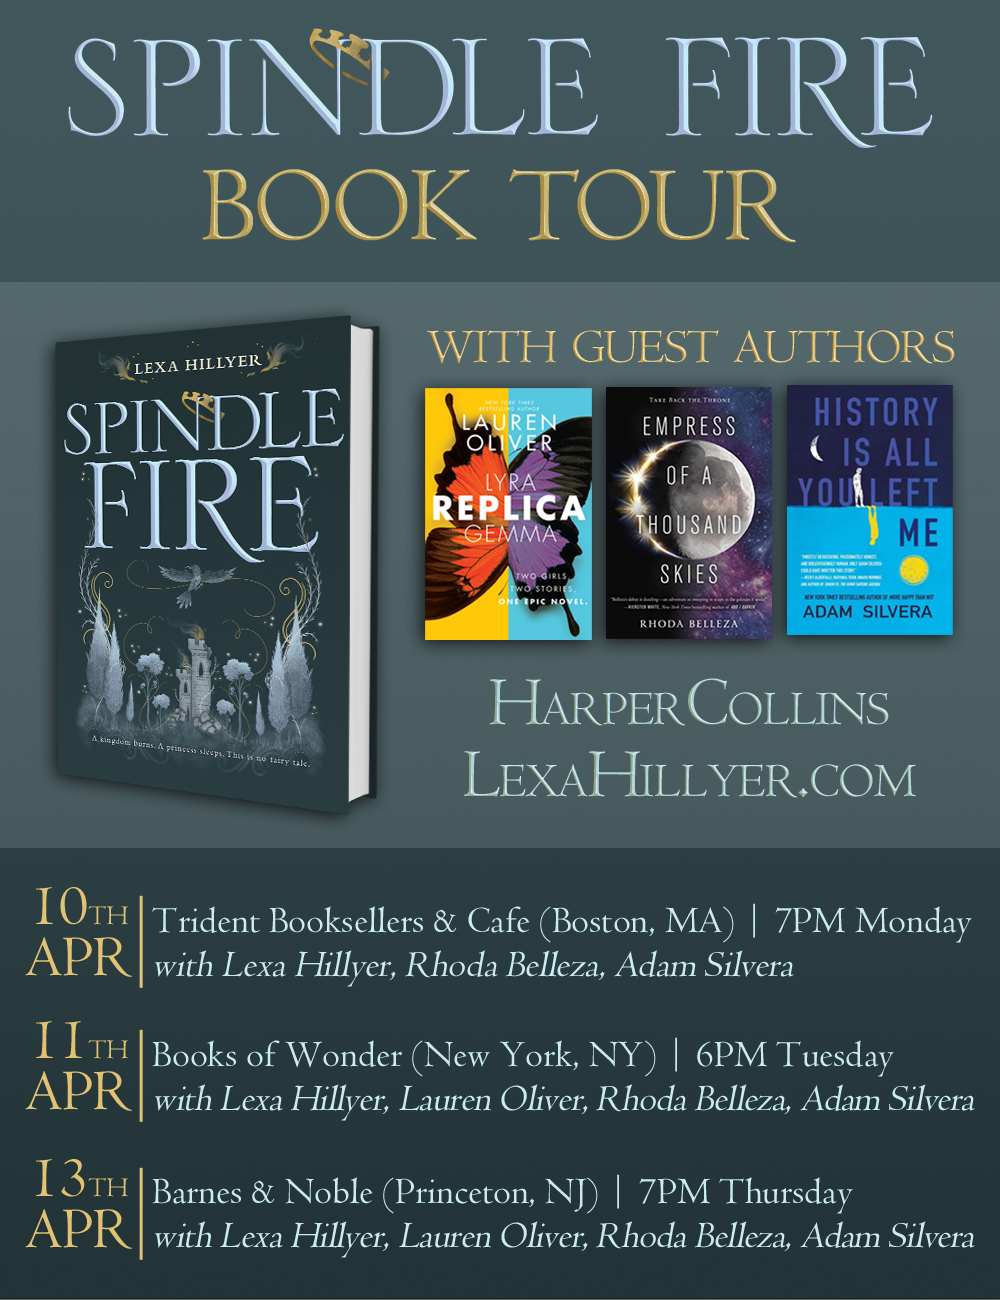 Spindle Fire Book Tour.jpg